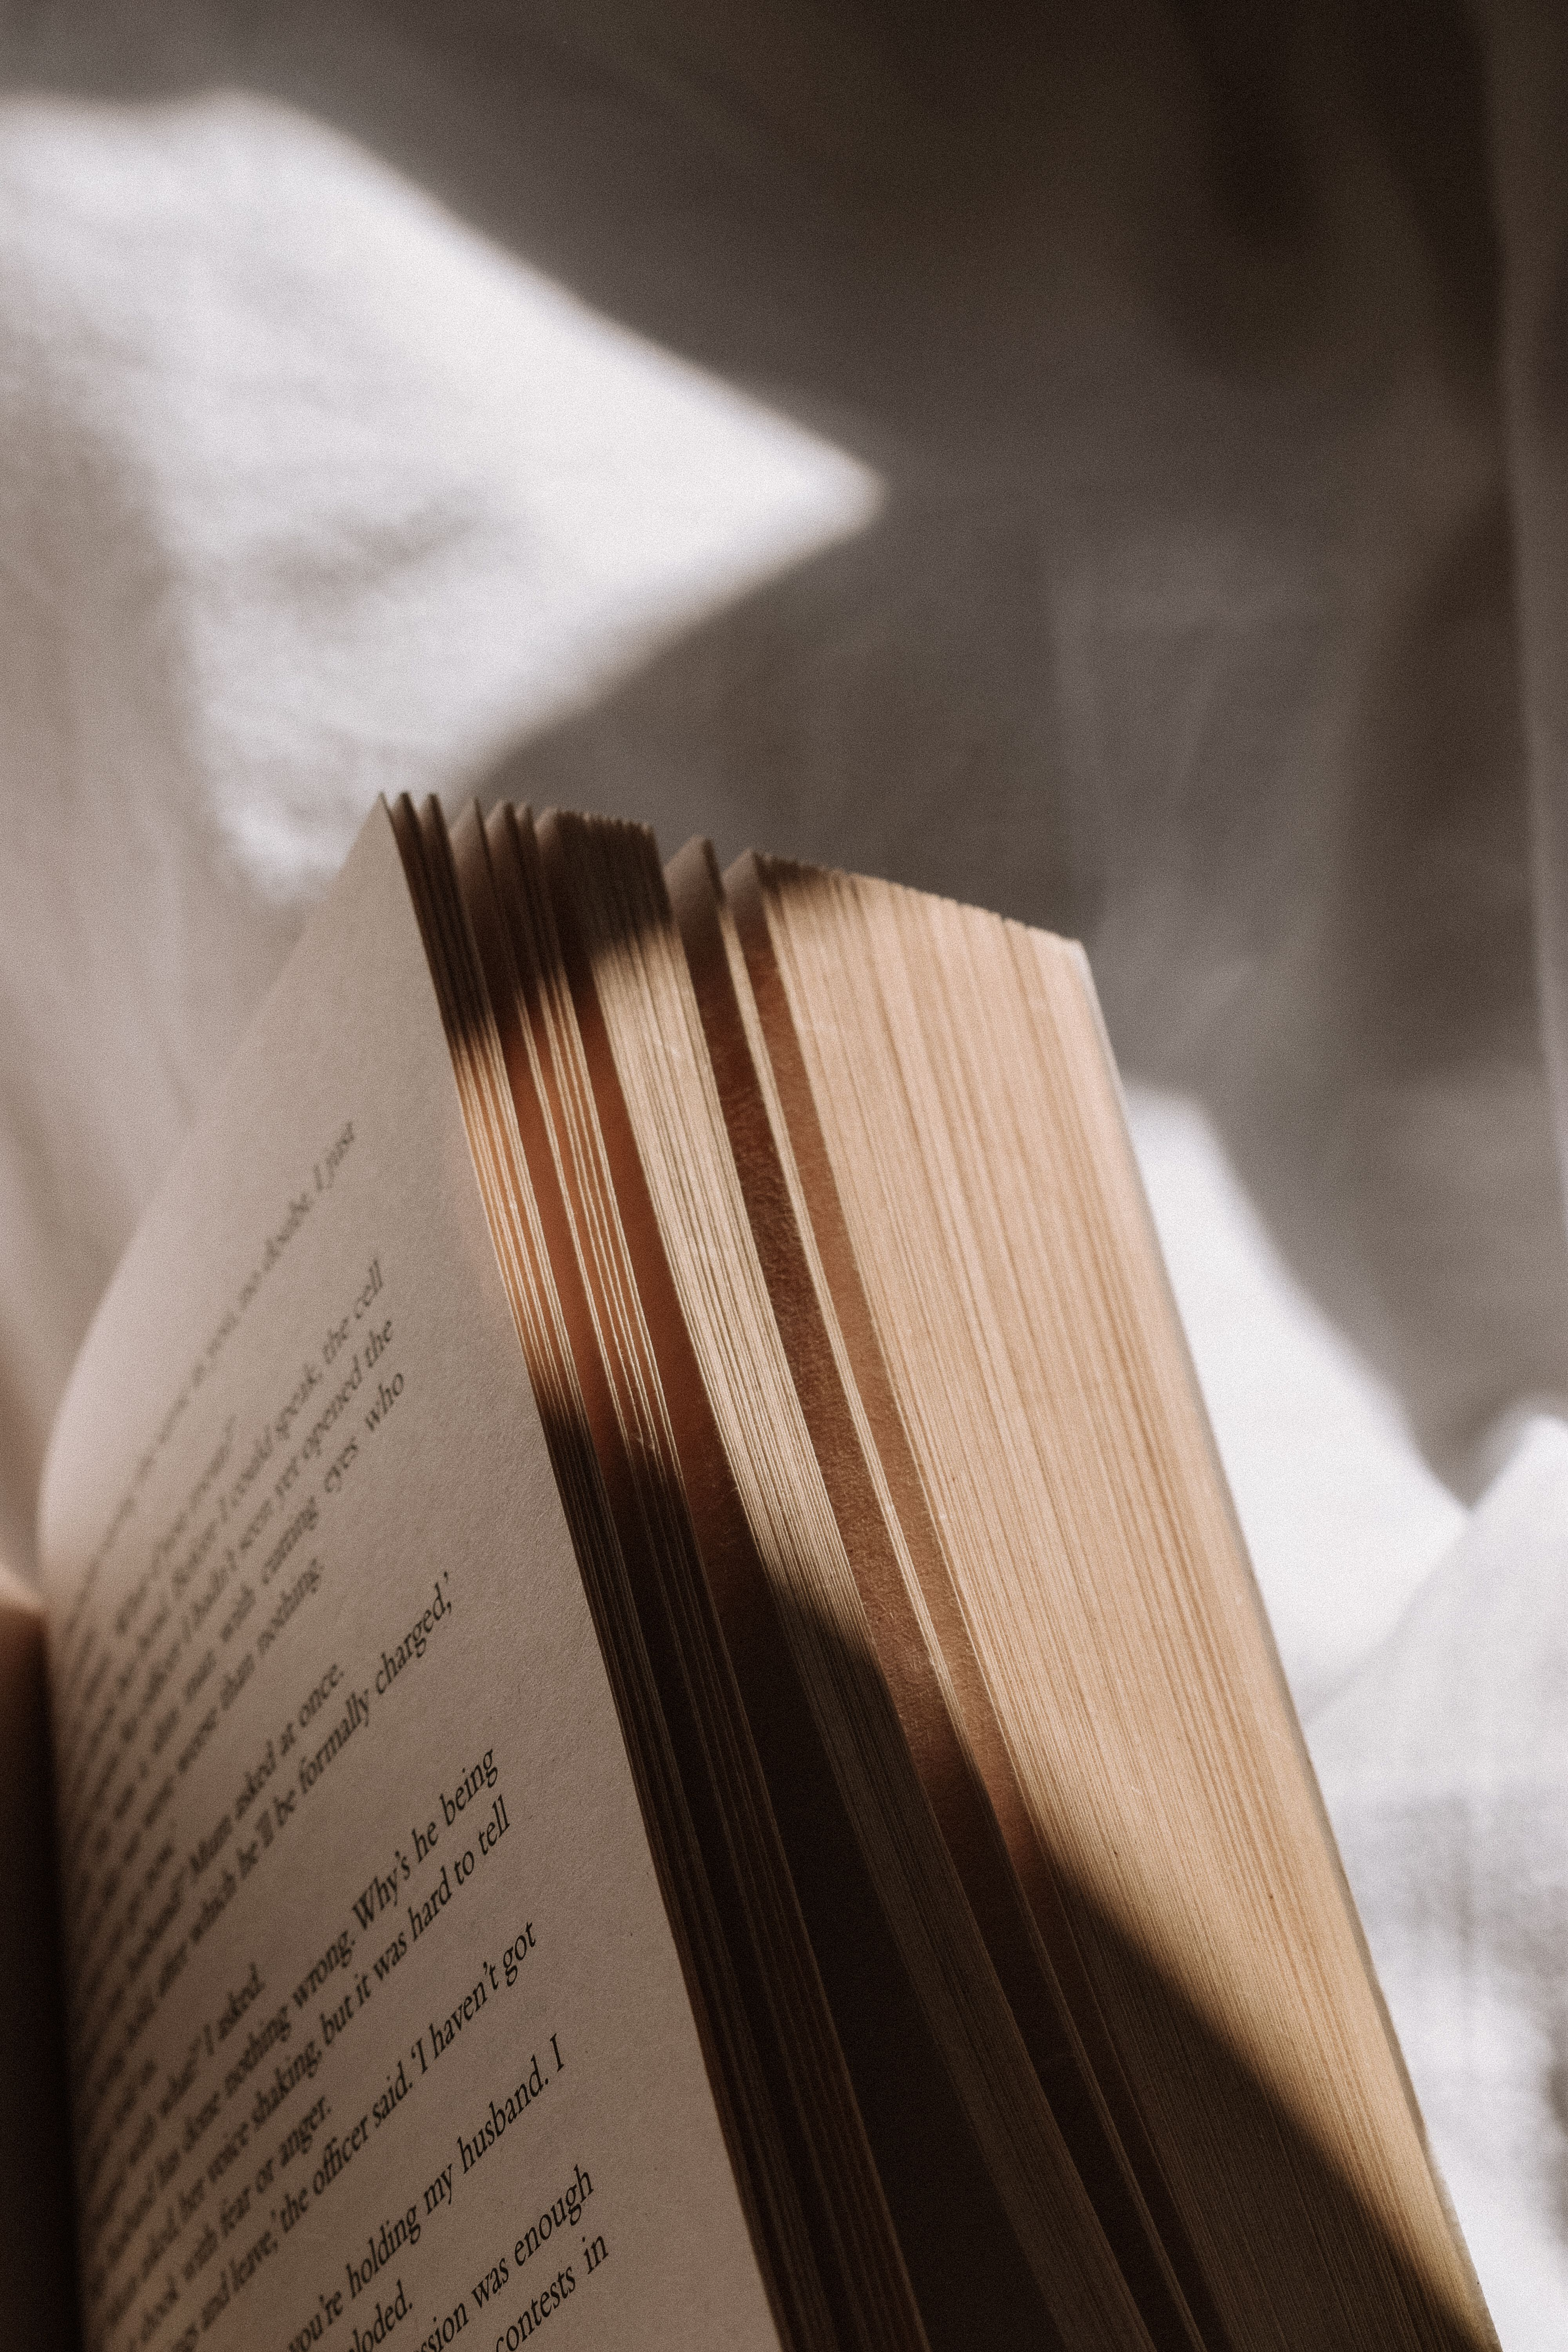 Book Pages - Vintage Photography - Light and Shado